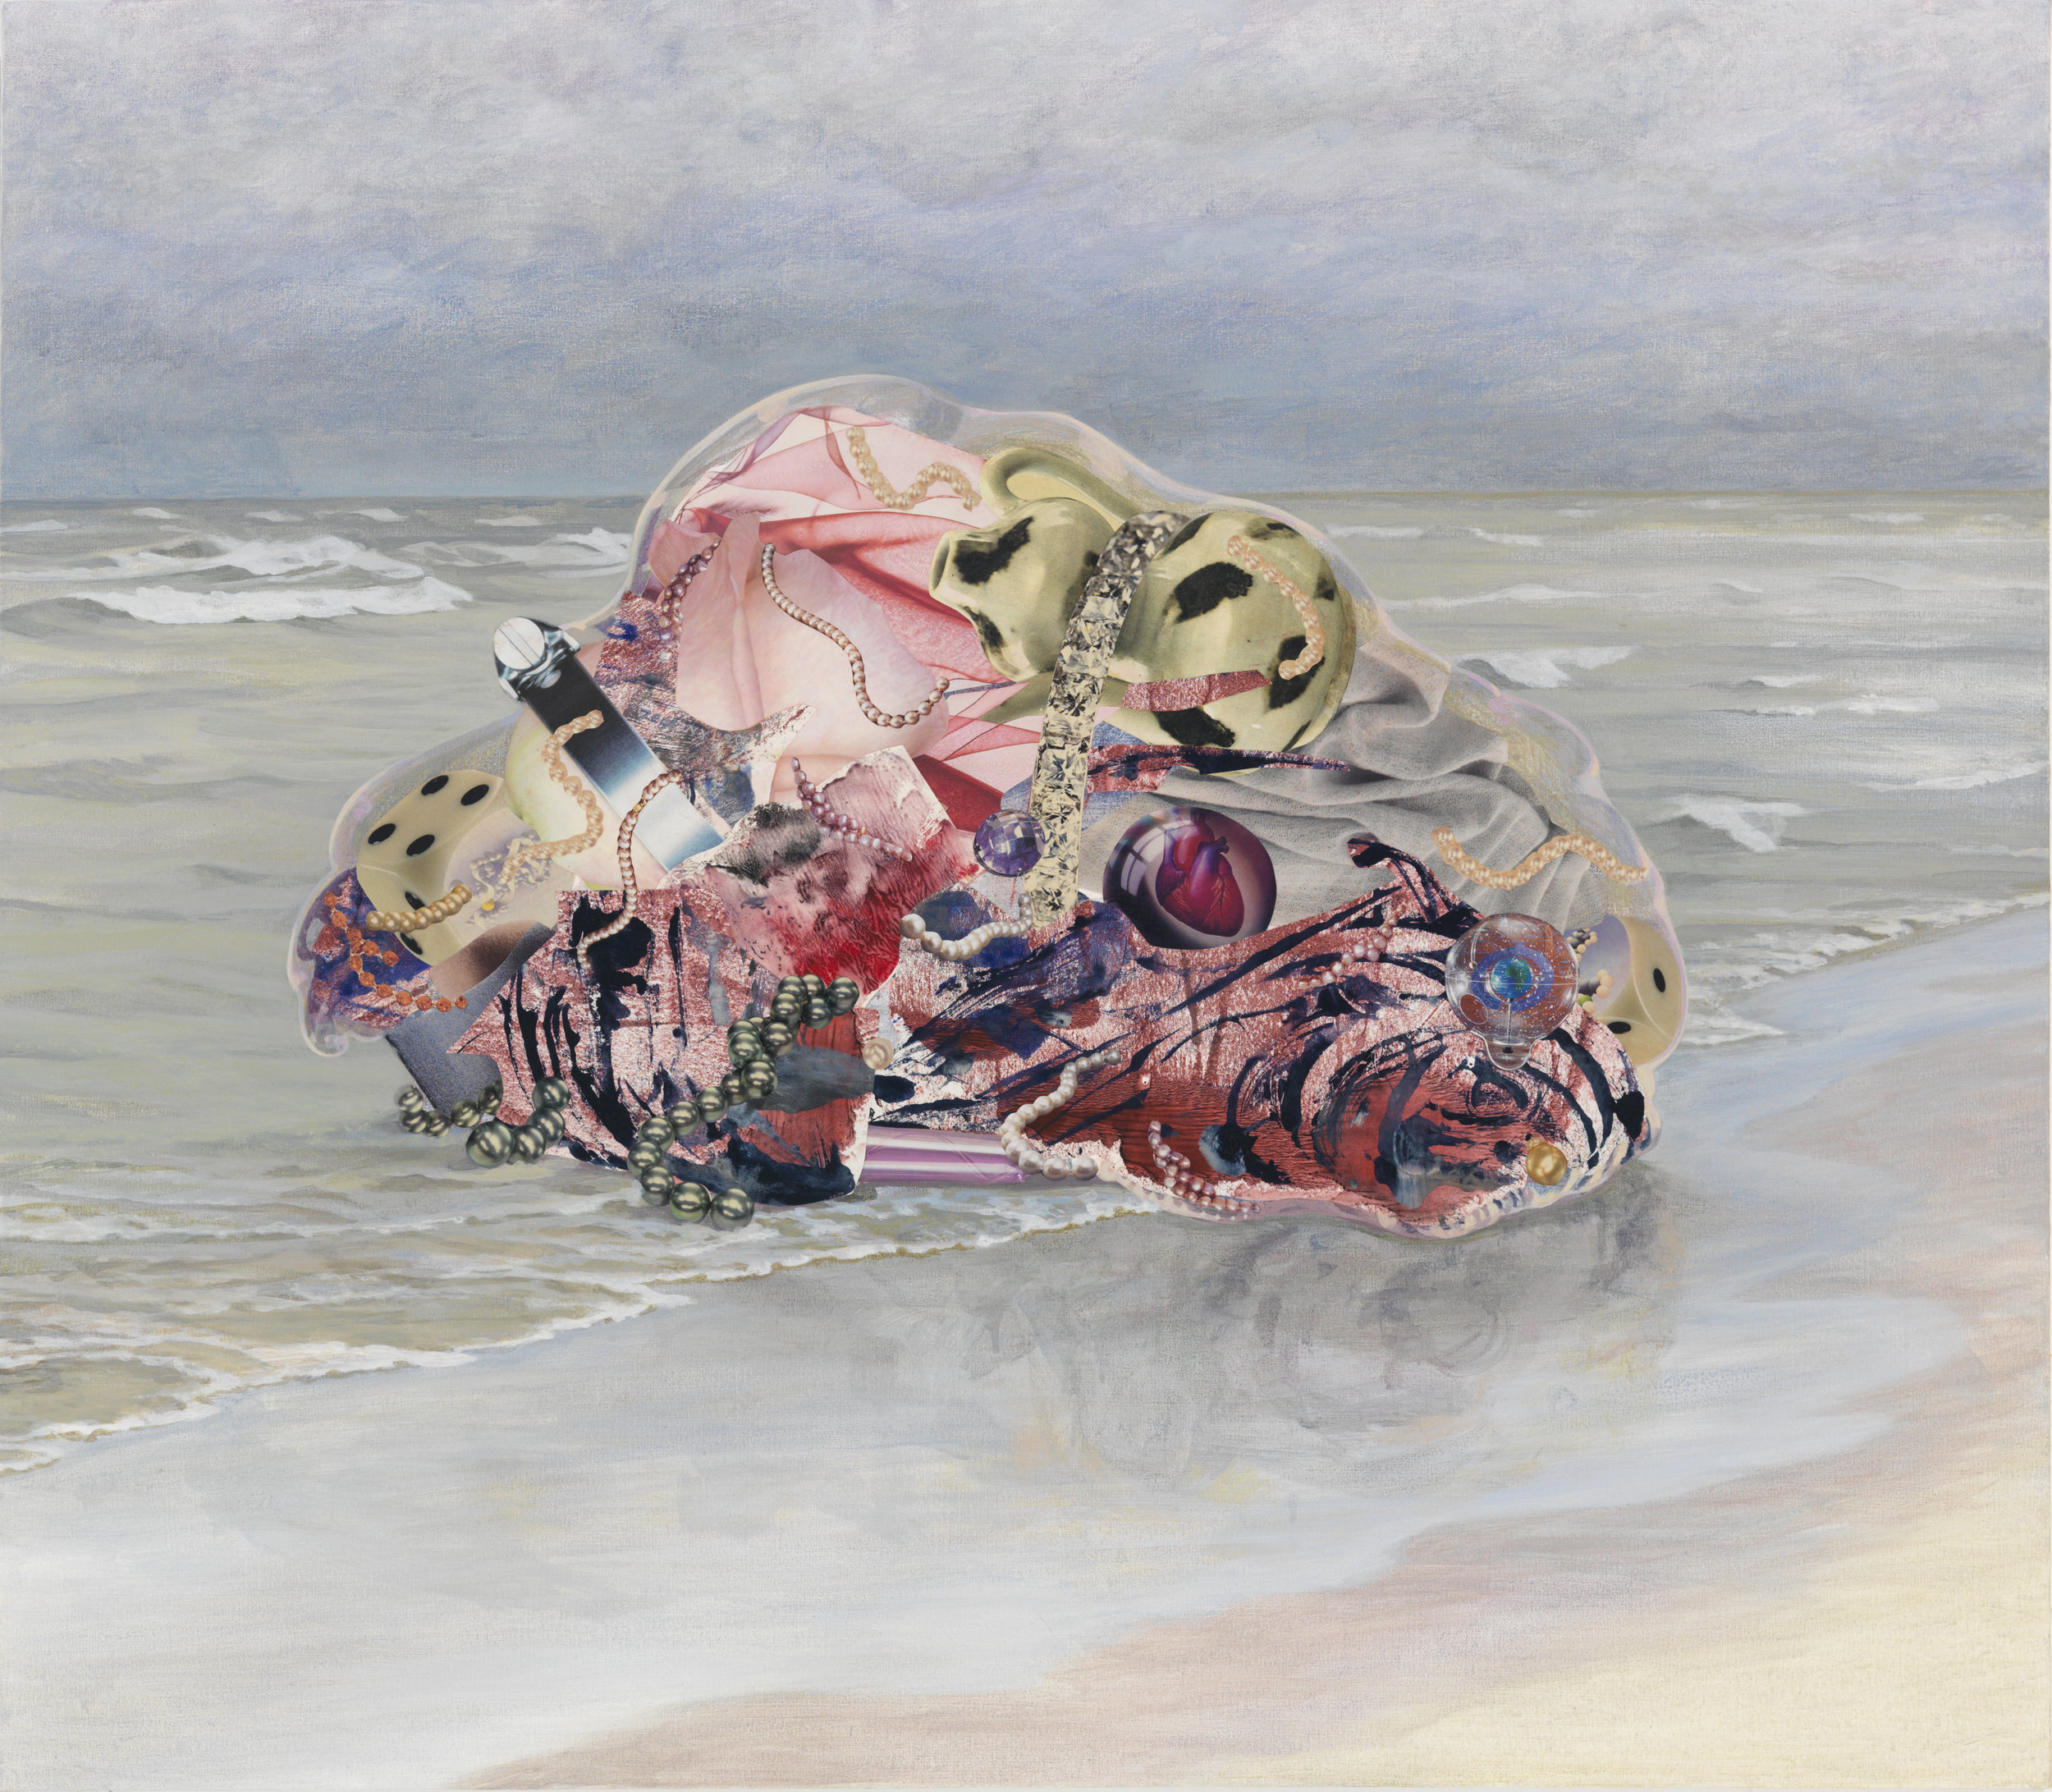 "Mary Lou Zelazny,  Pink Tide , Acrylic and collage on canvas, 35 x 40"", 2009"